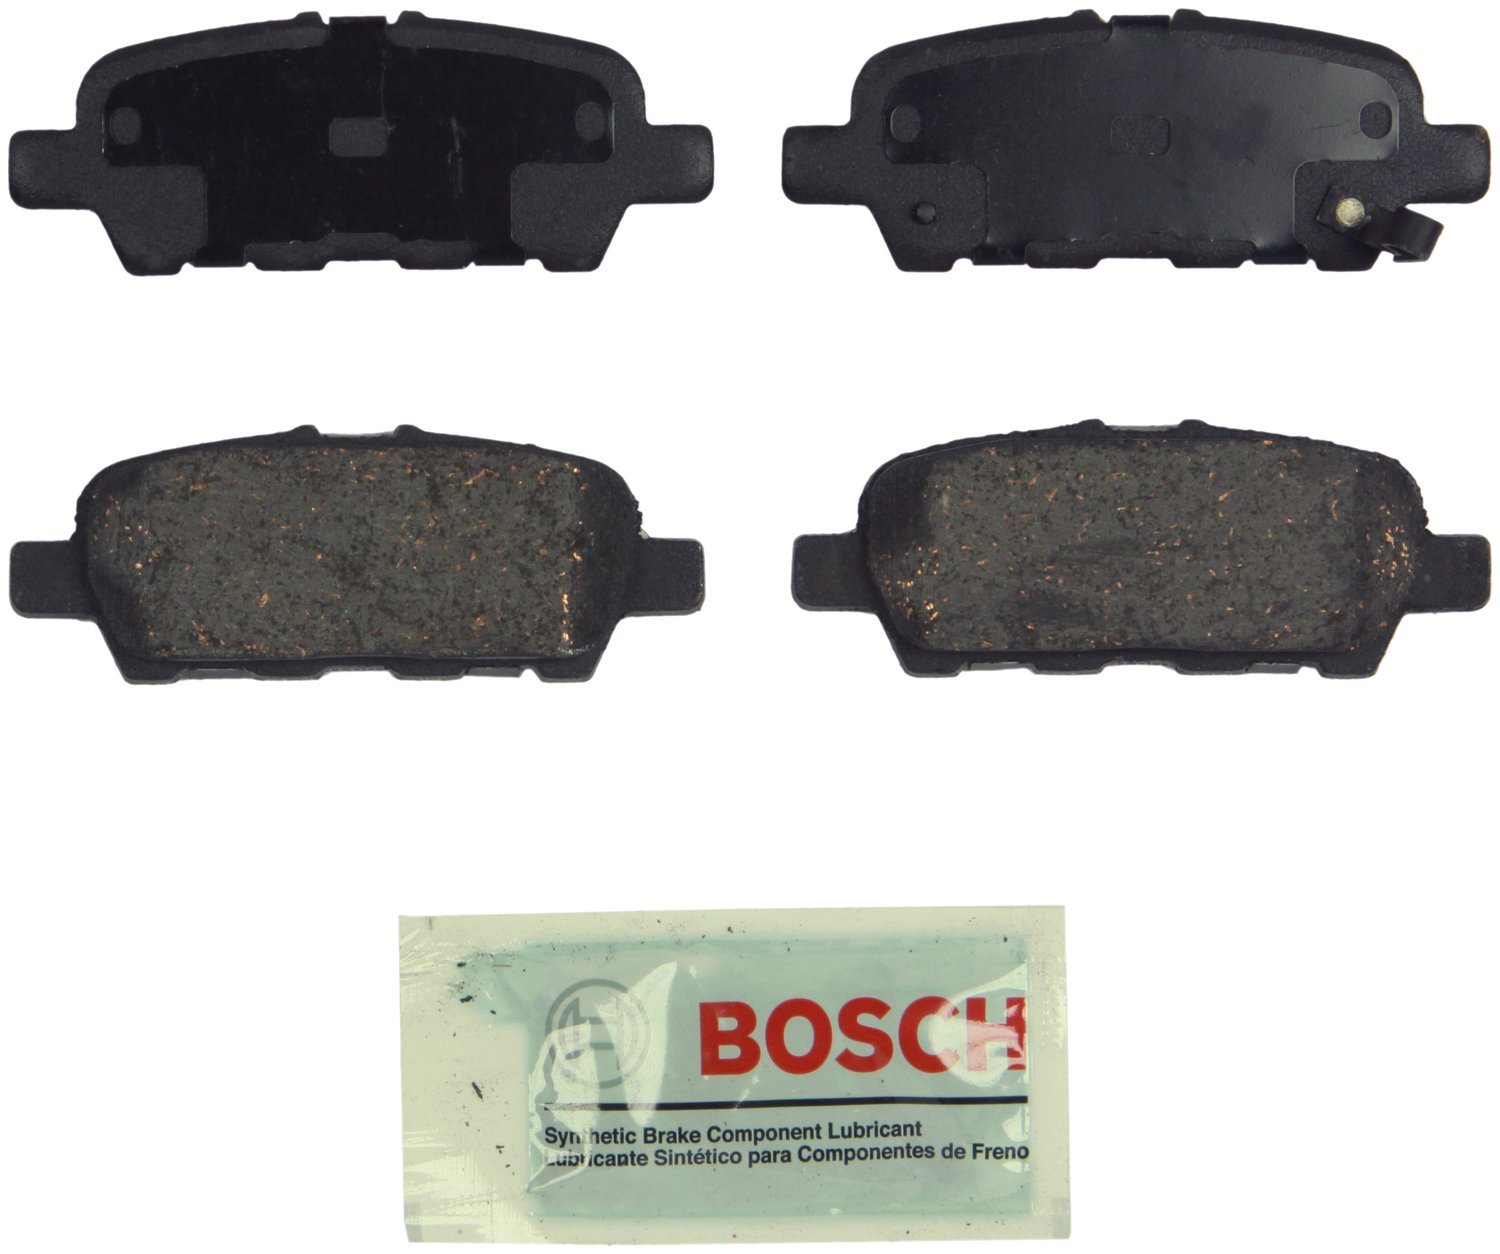 Bosch BE905 Blue Disc Brake Pad Set - rear by Bosch